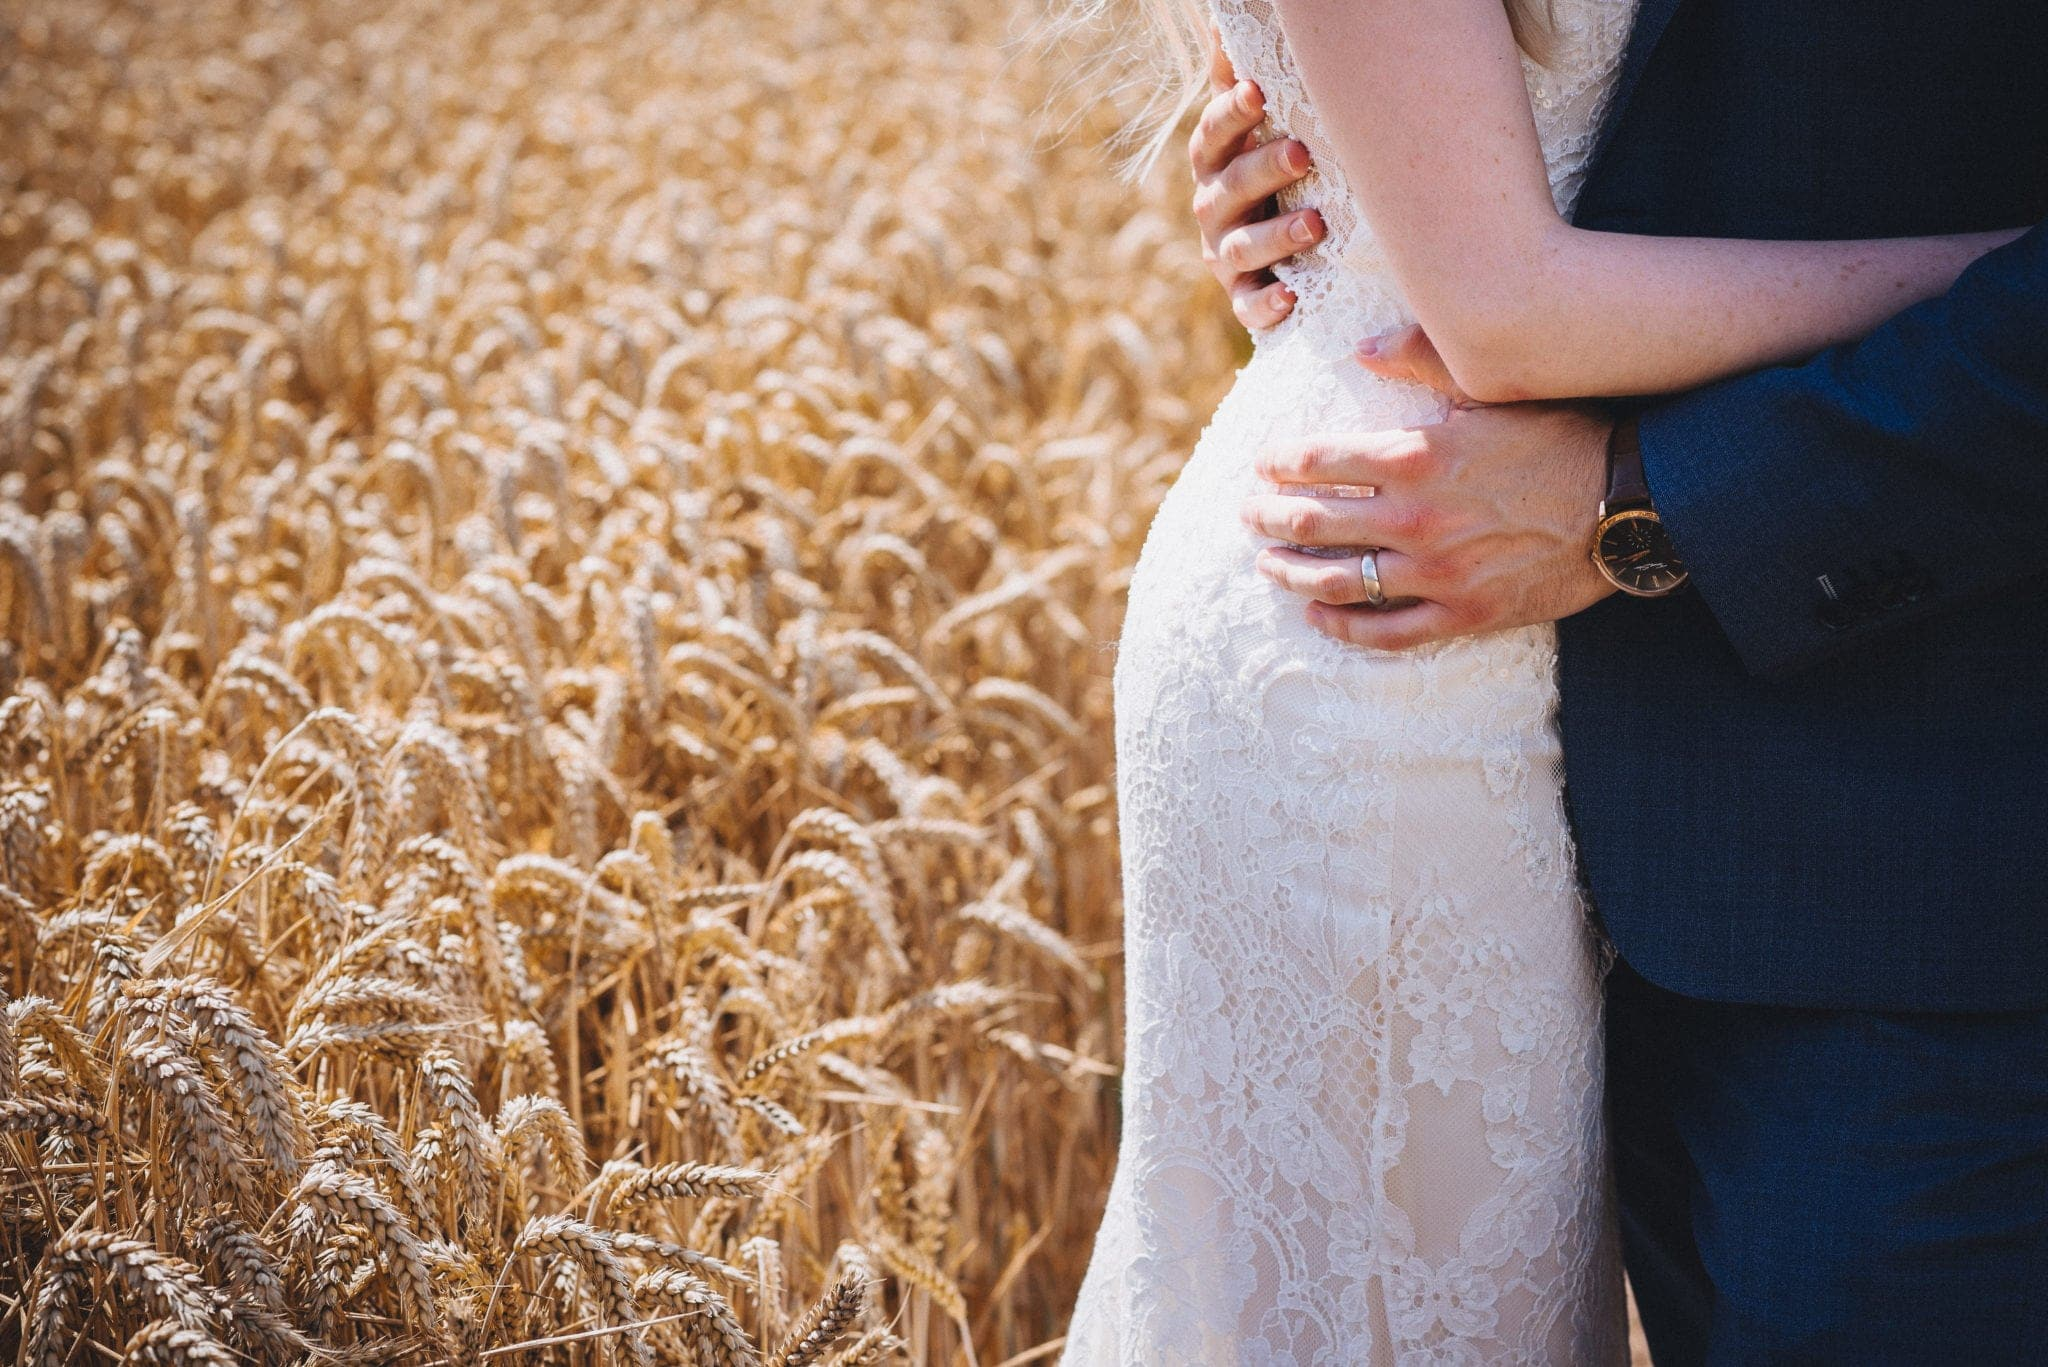 Close up of bride and groom with their arms around each other's waists standing in a summer corn field